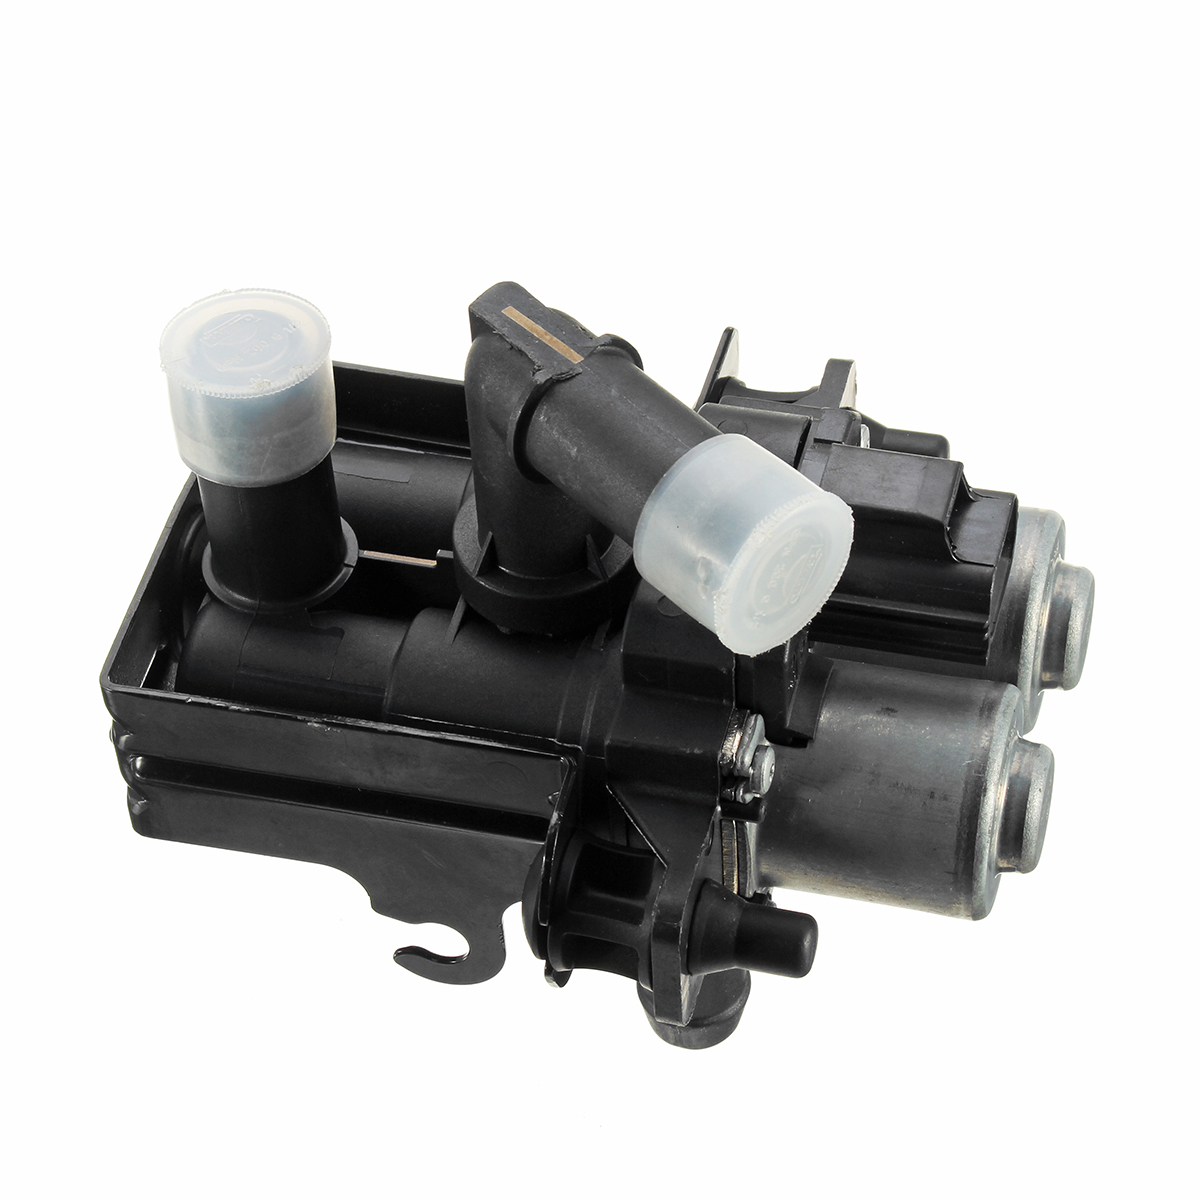 Heater Control Water Valve For JAGUAR S-Type/ Ford Thunderbird/ Lincoln XR822975